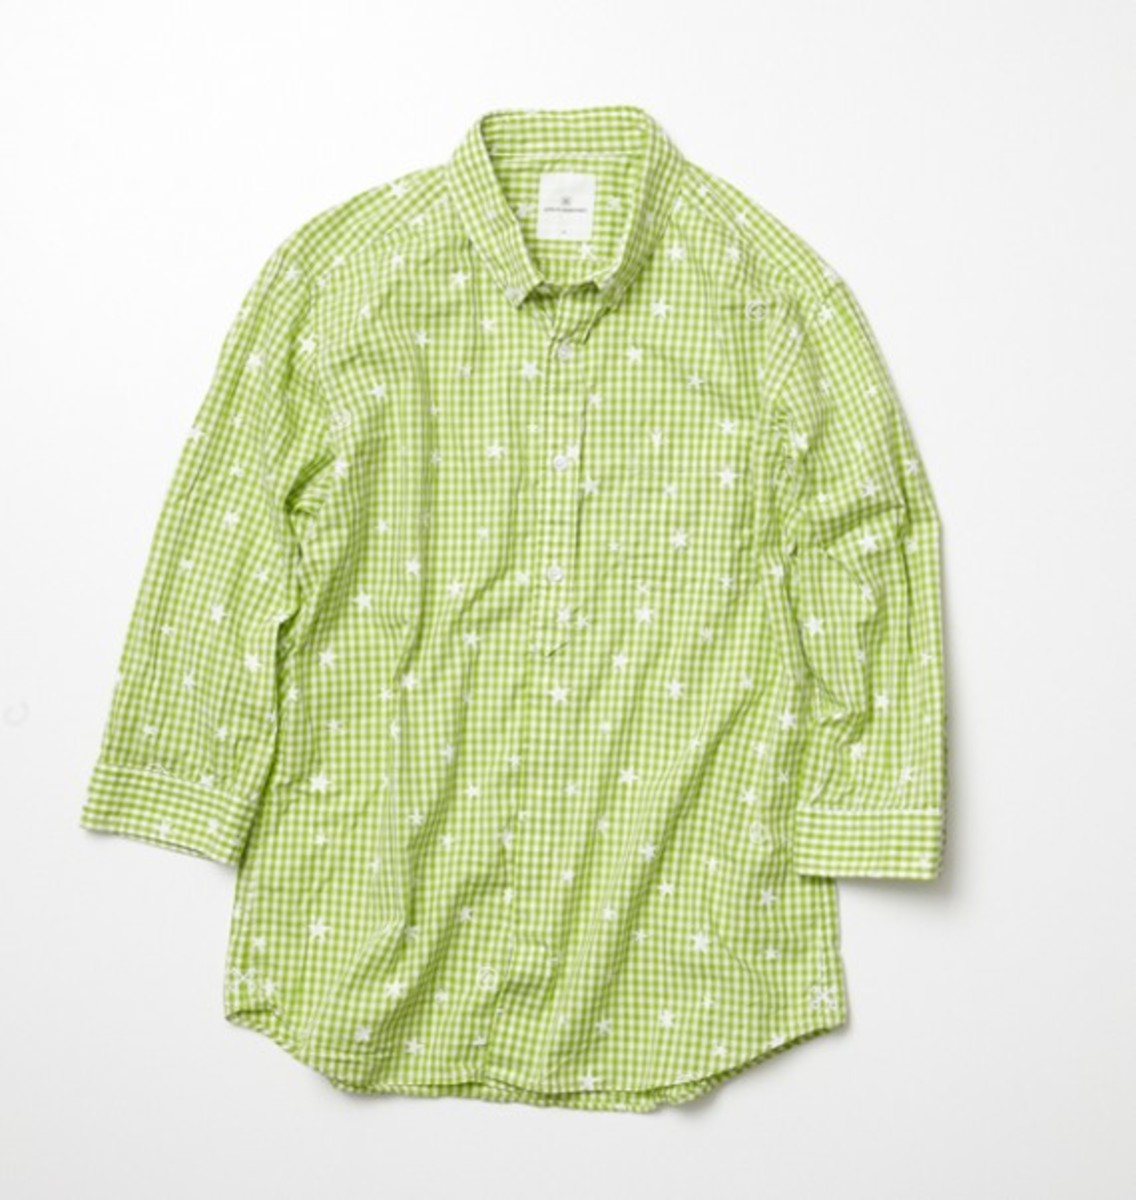 star-print-gingham-check-shirt-05